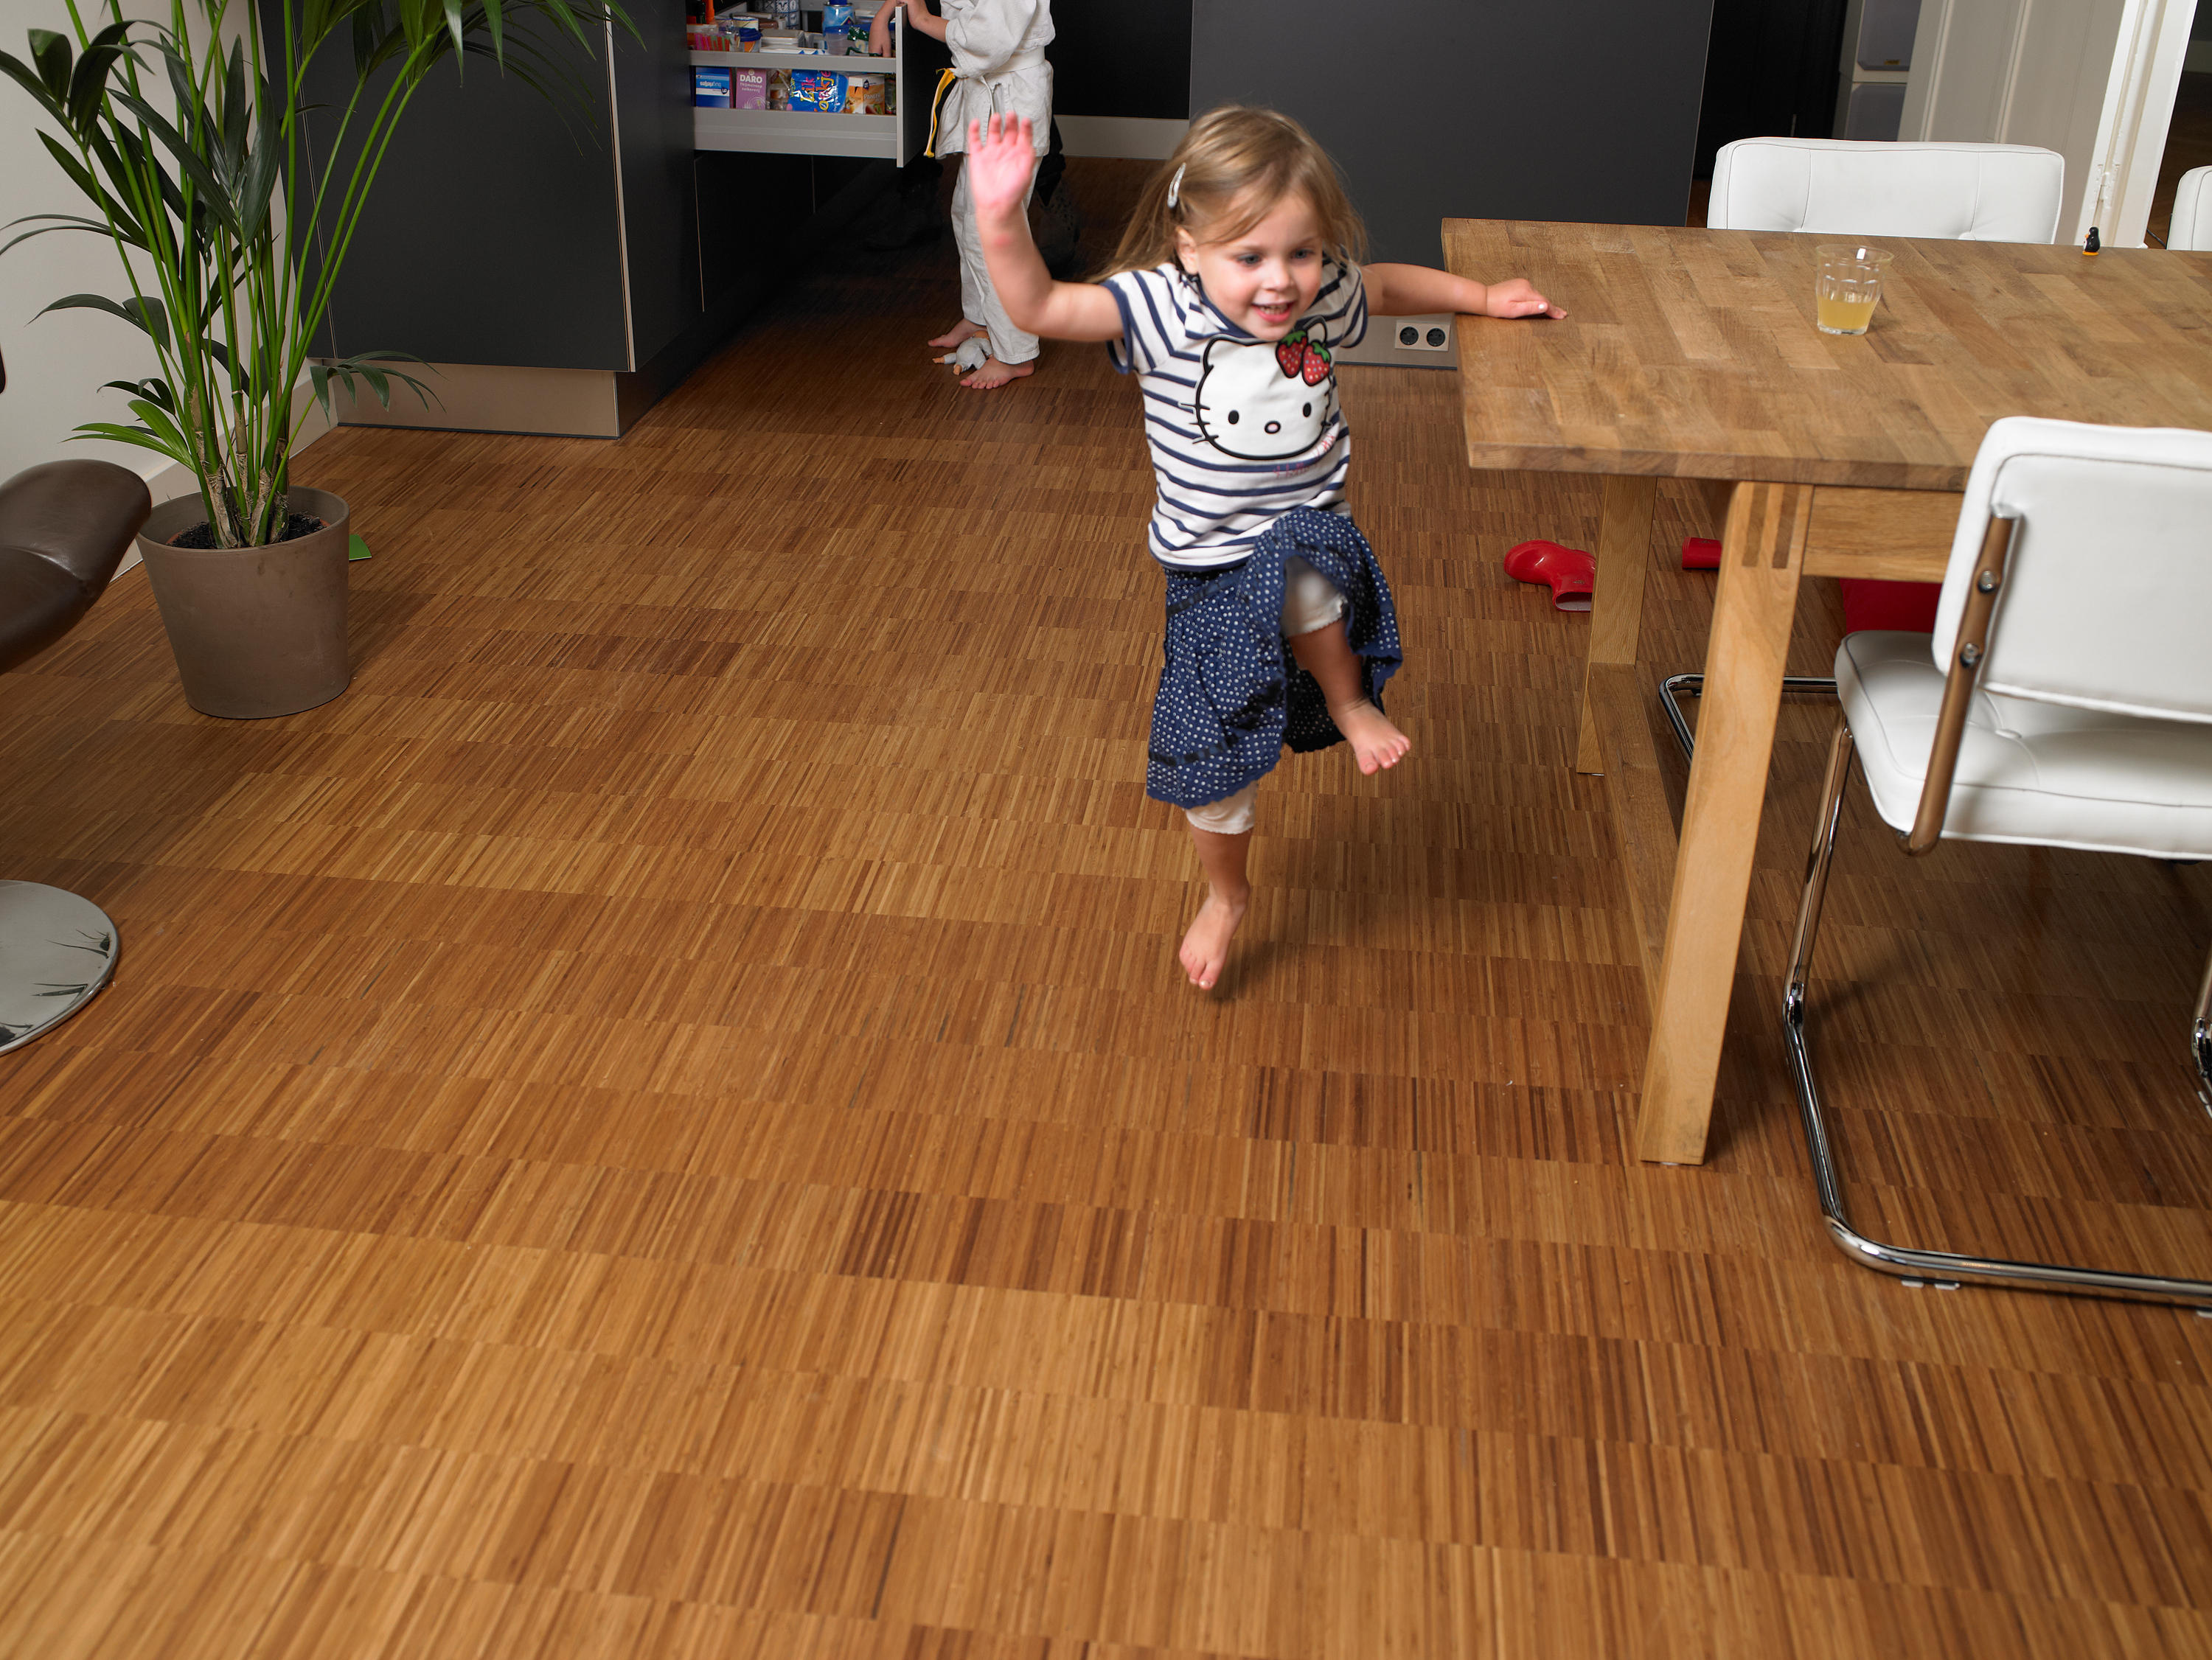 BAMBOO INDUSTRIALE CARAMEL Bamboo flooring from MOSO bamboo